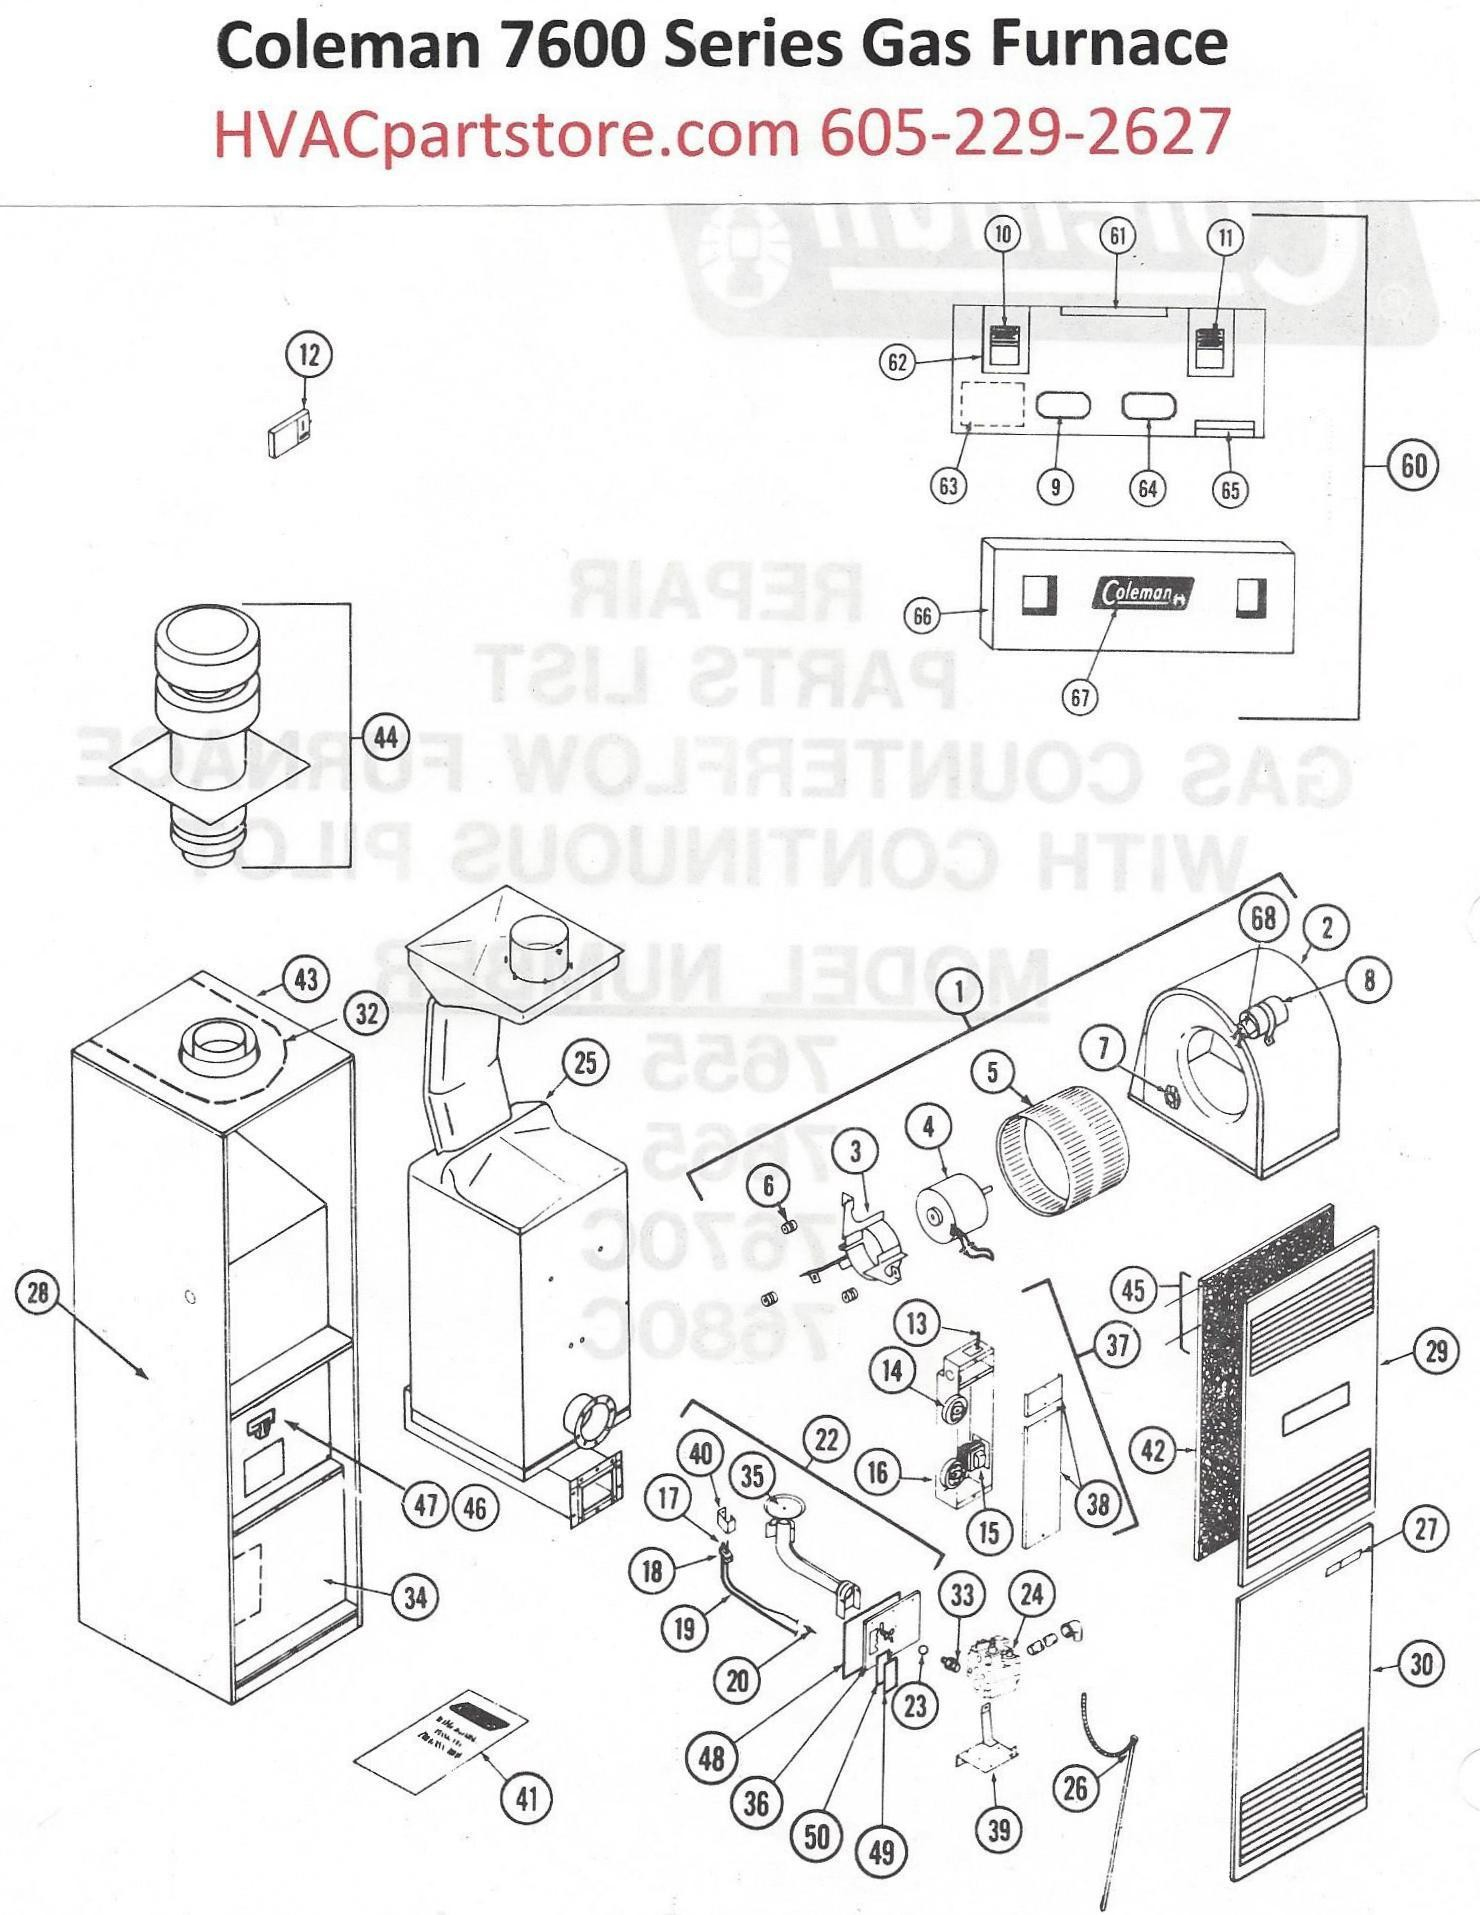 Preidential Coleman Furnace Wiring Diagram on